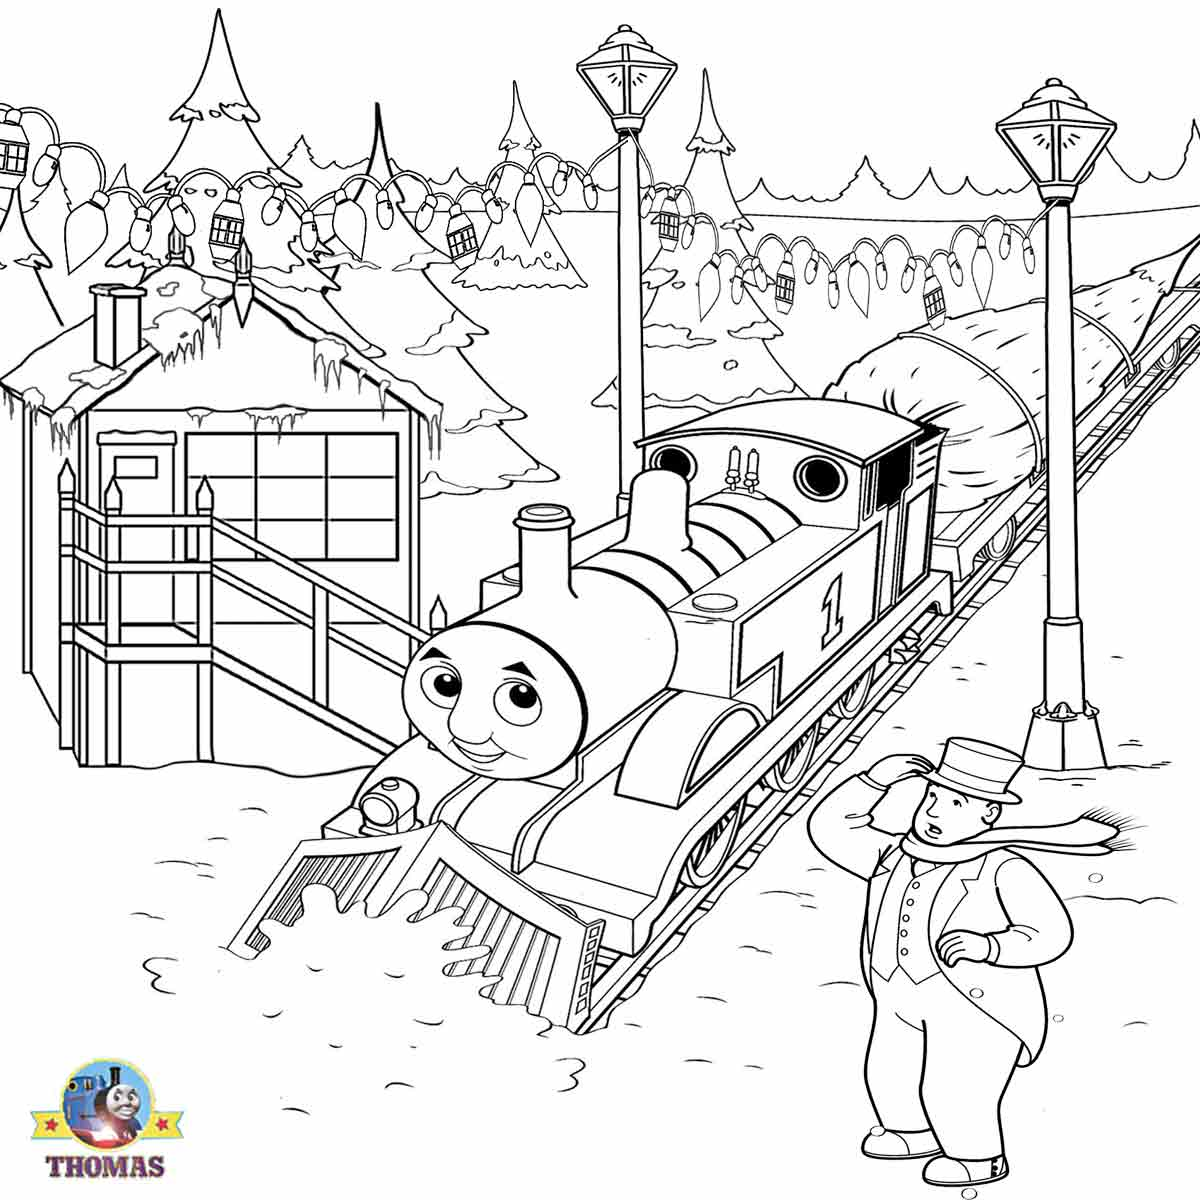 Thomas christmas coloring sheets for children printable for Printable thomas the train coloring pages